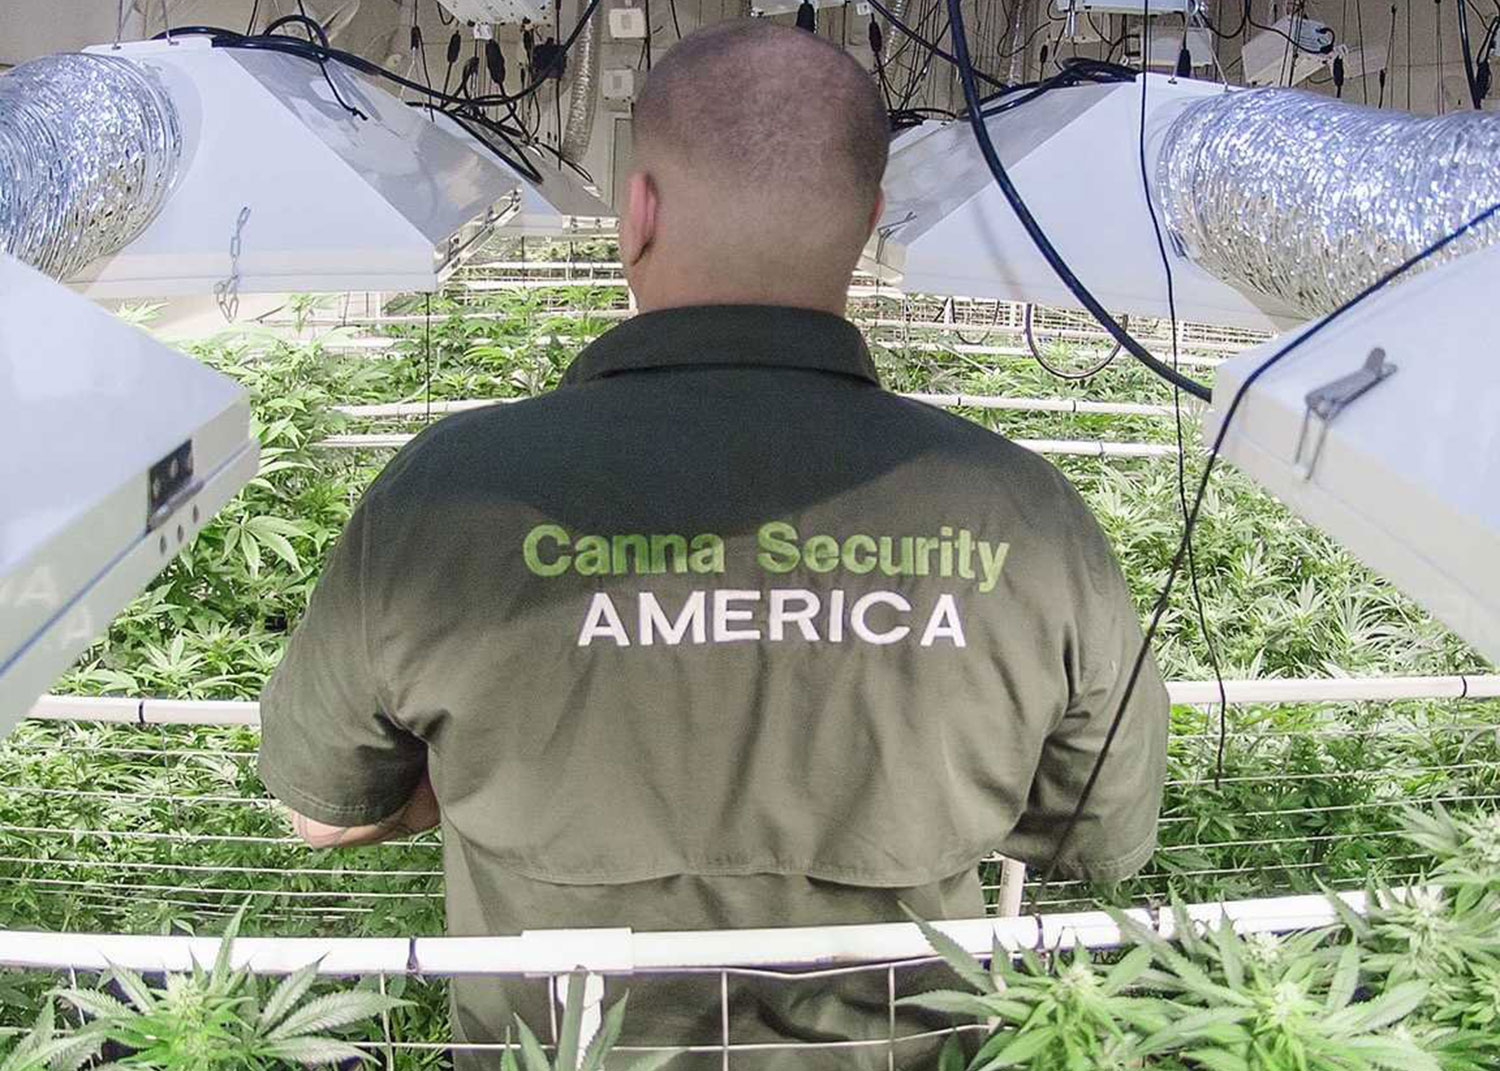 private_canna_security_1500w.jpg